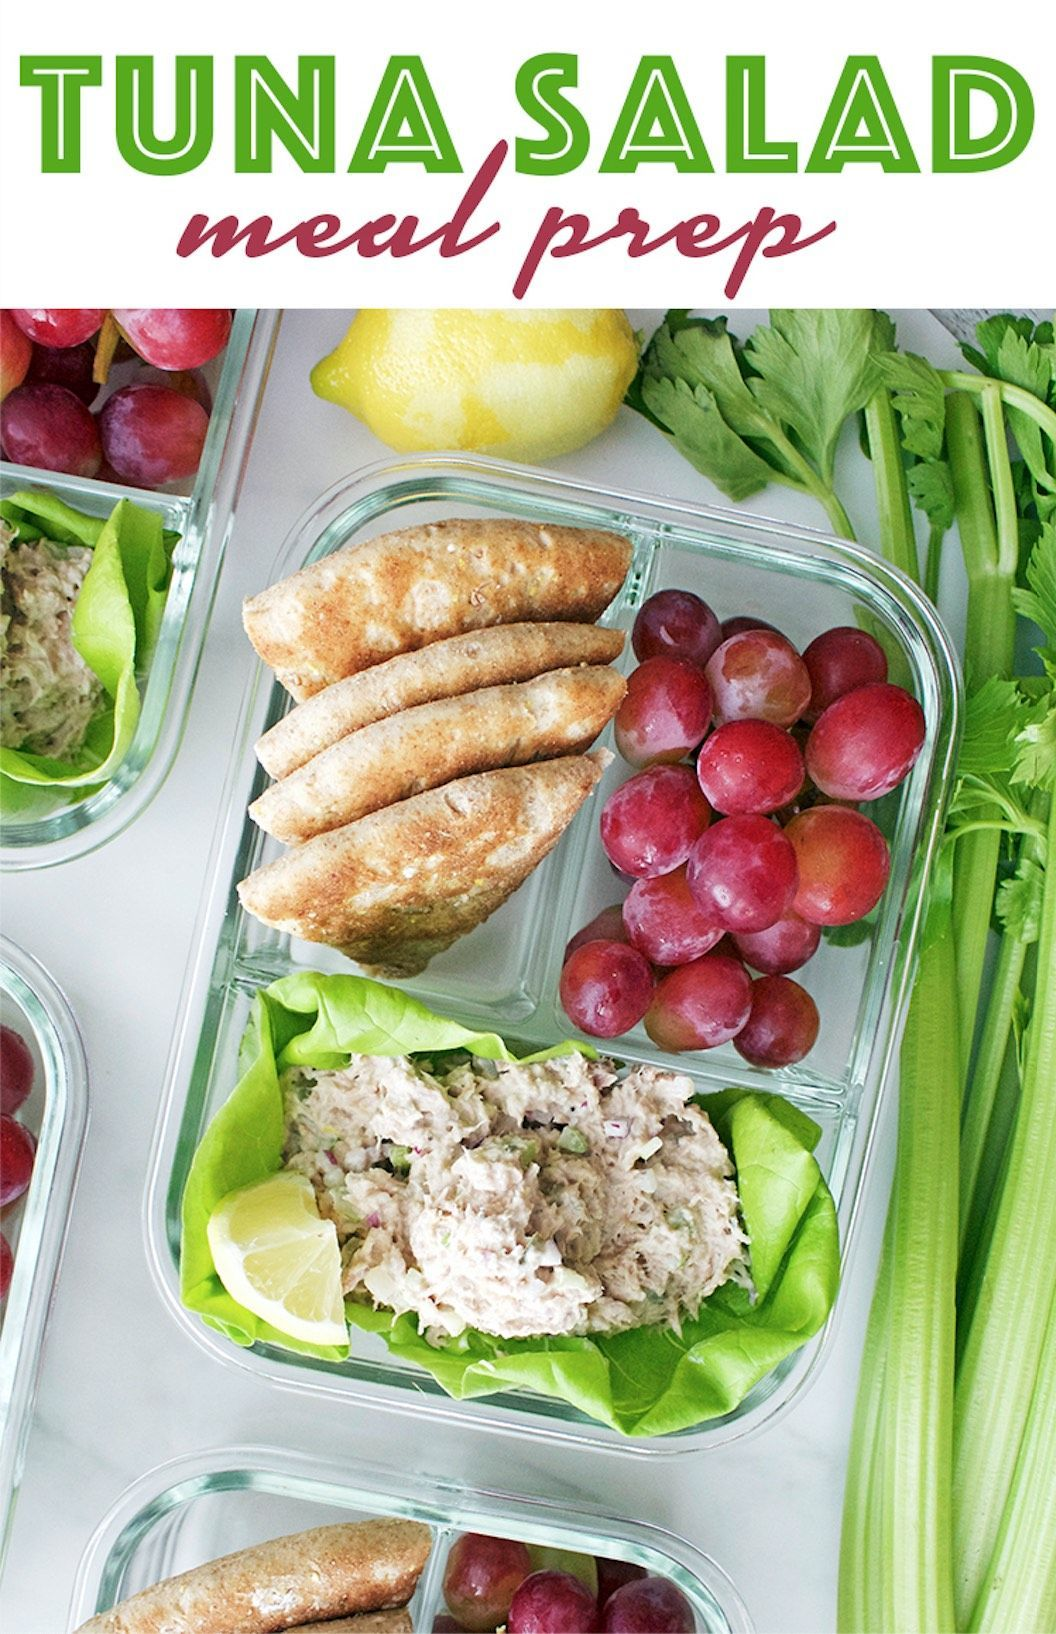 Tuna Salad Meal Prep  Peanut Butter and Fitness Tuna Salad Meal Prep  Peanut Butter and Fitness Laur...